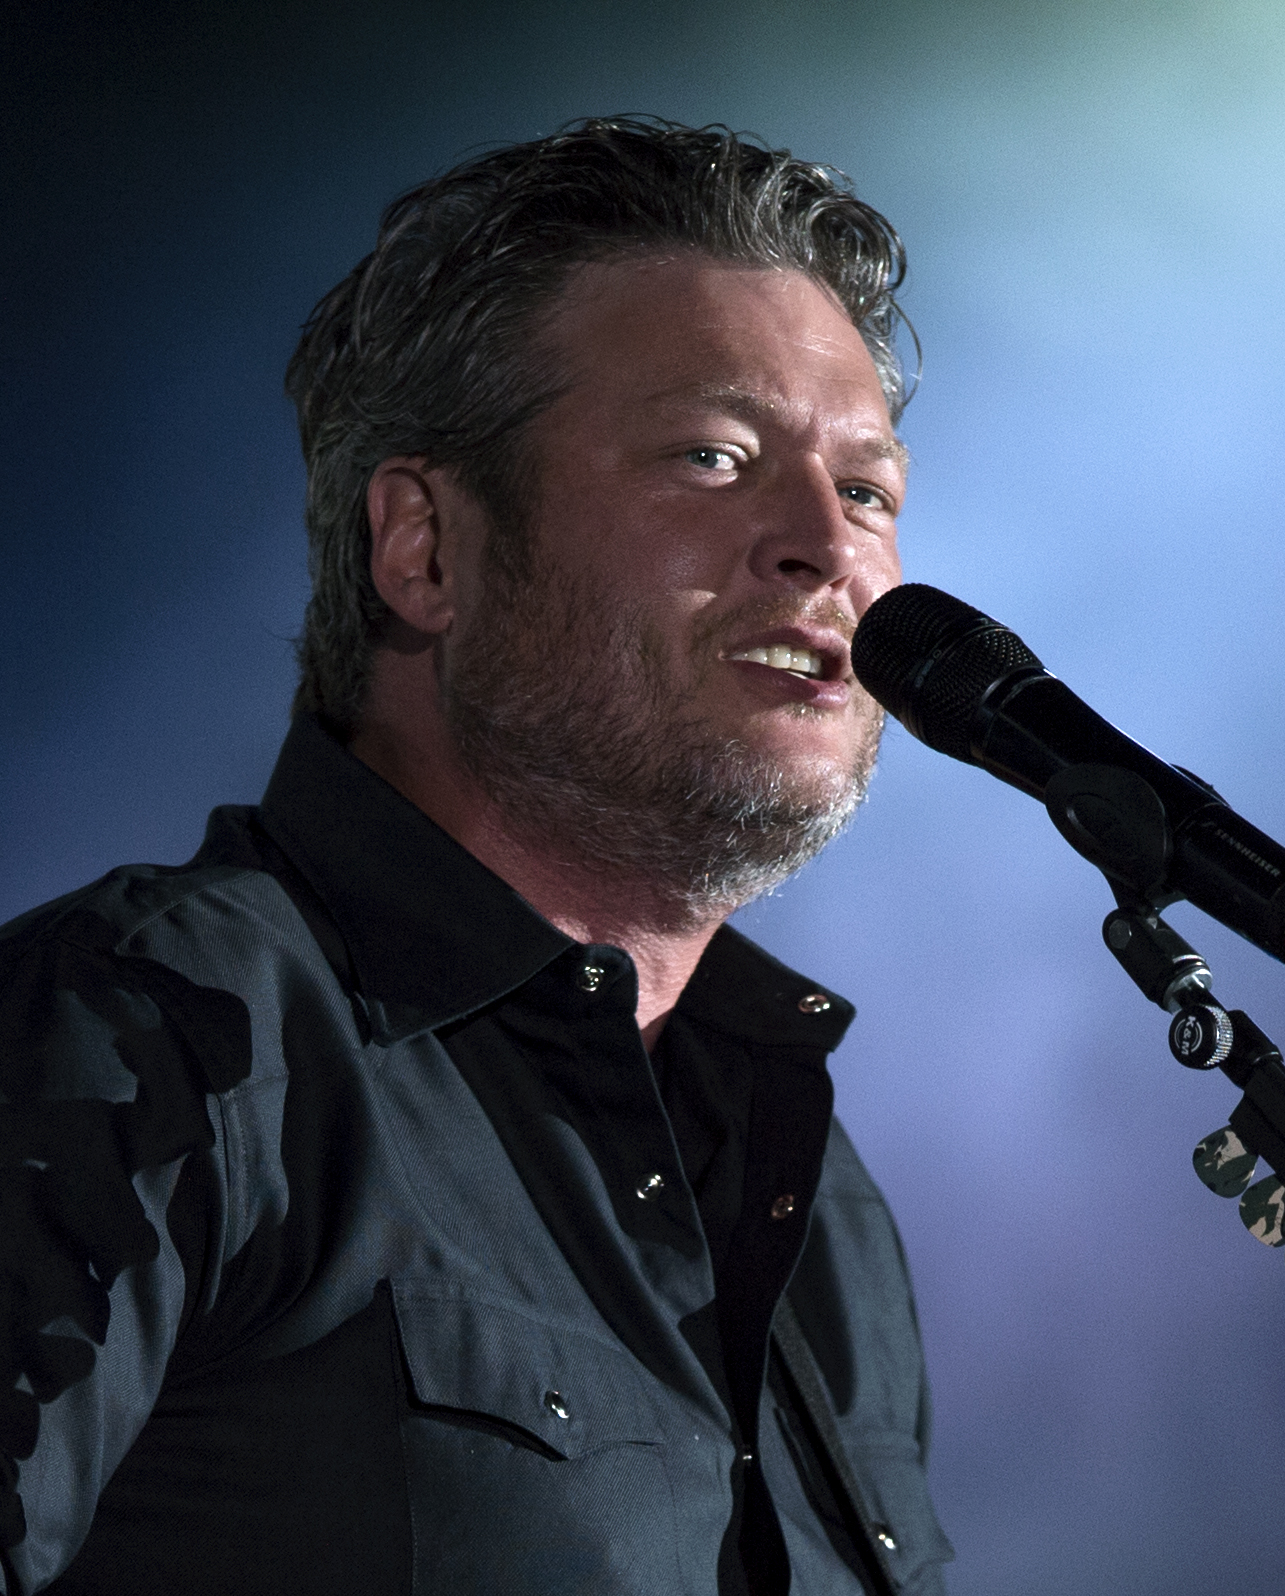 Blake Shelton Cheers Its Christmas.Blake Shelton Wikipedia